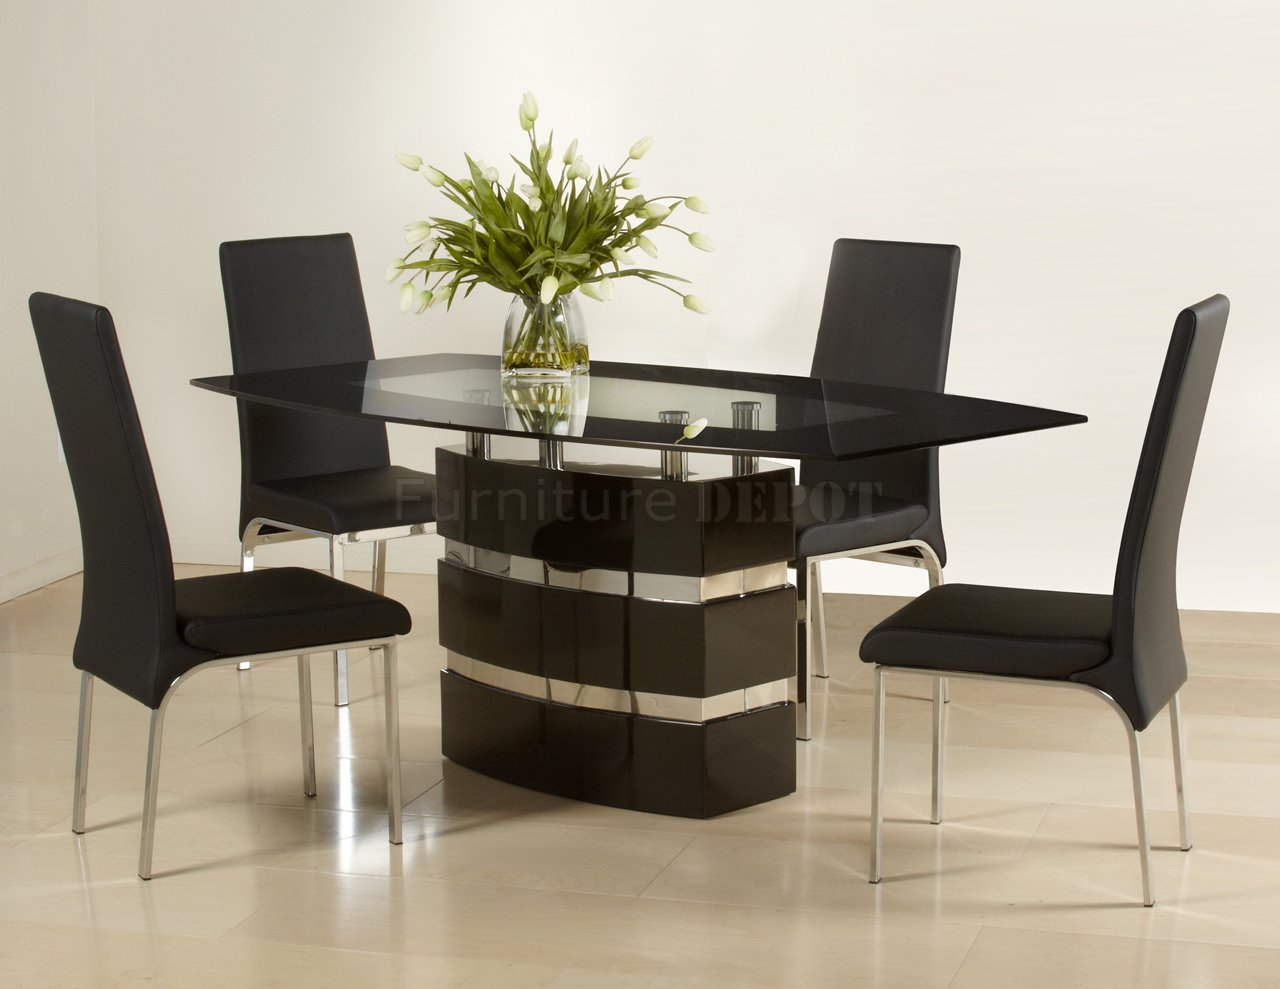 dining tables modern photo - 4